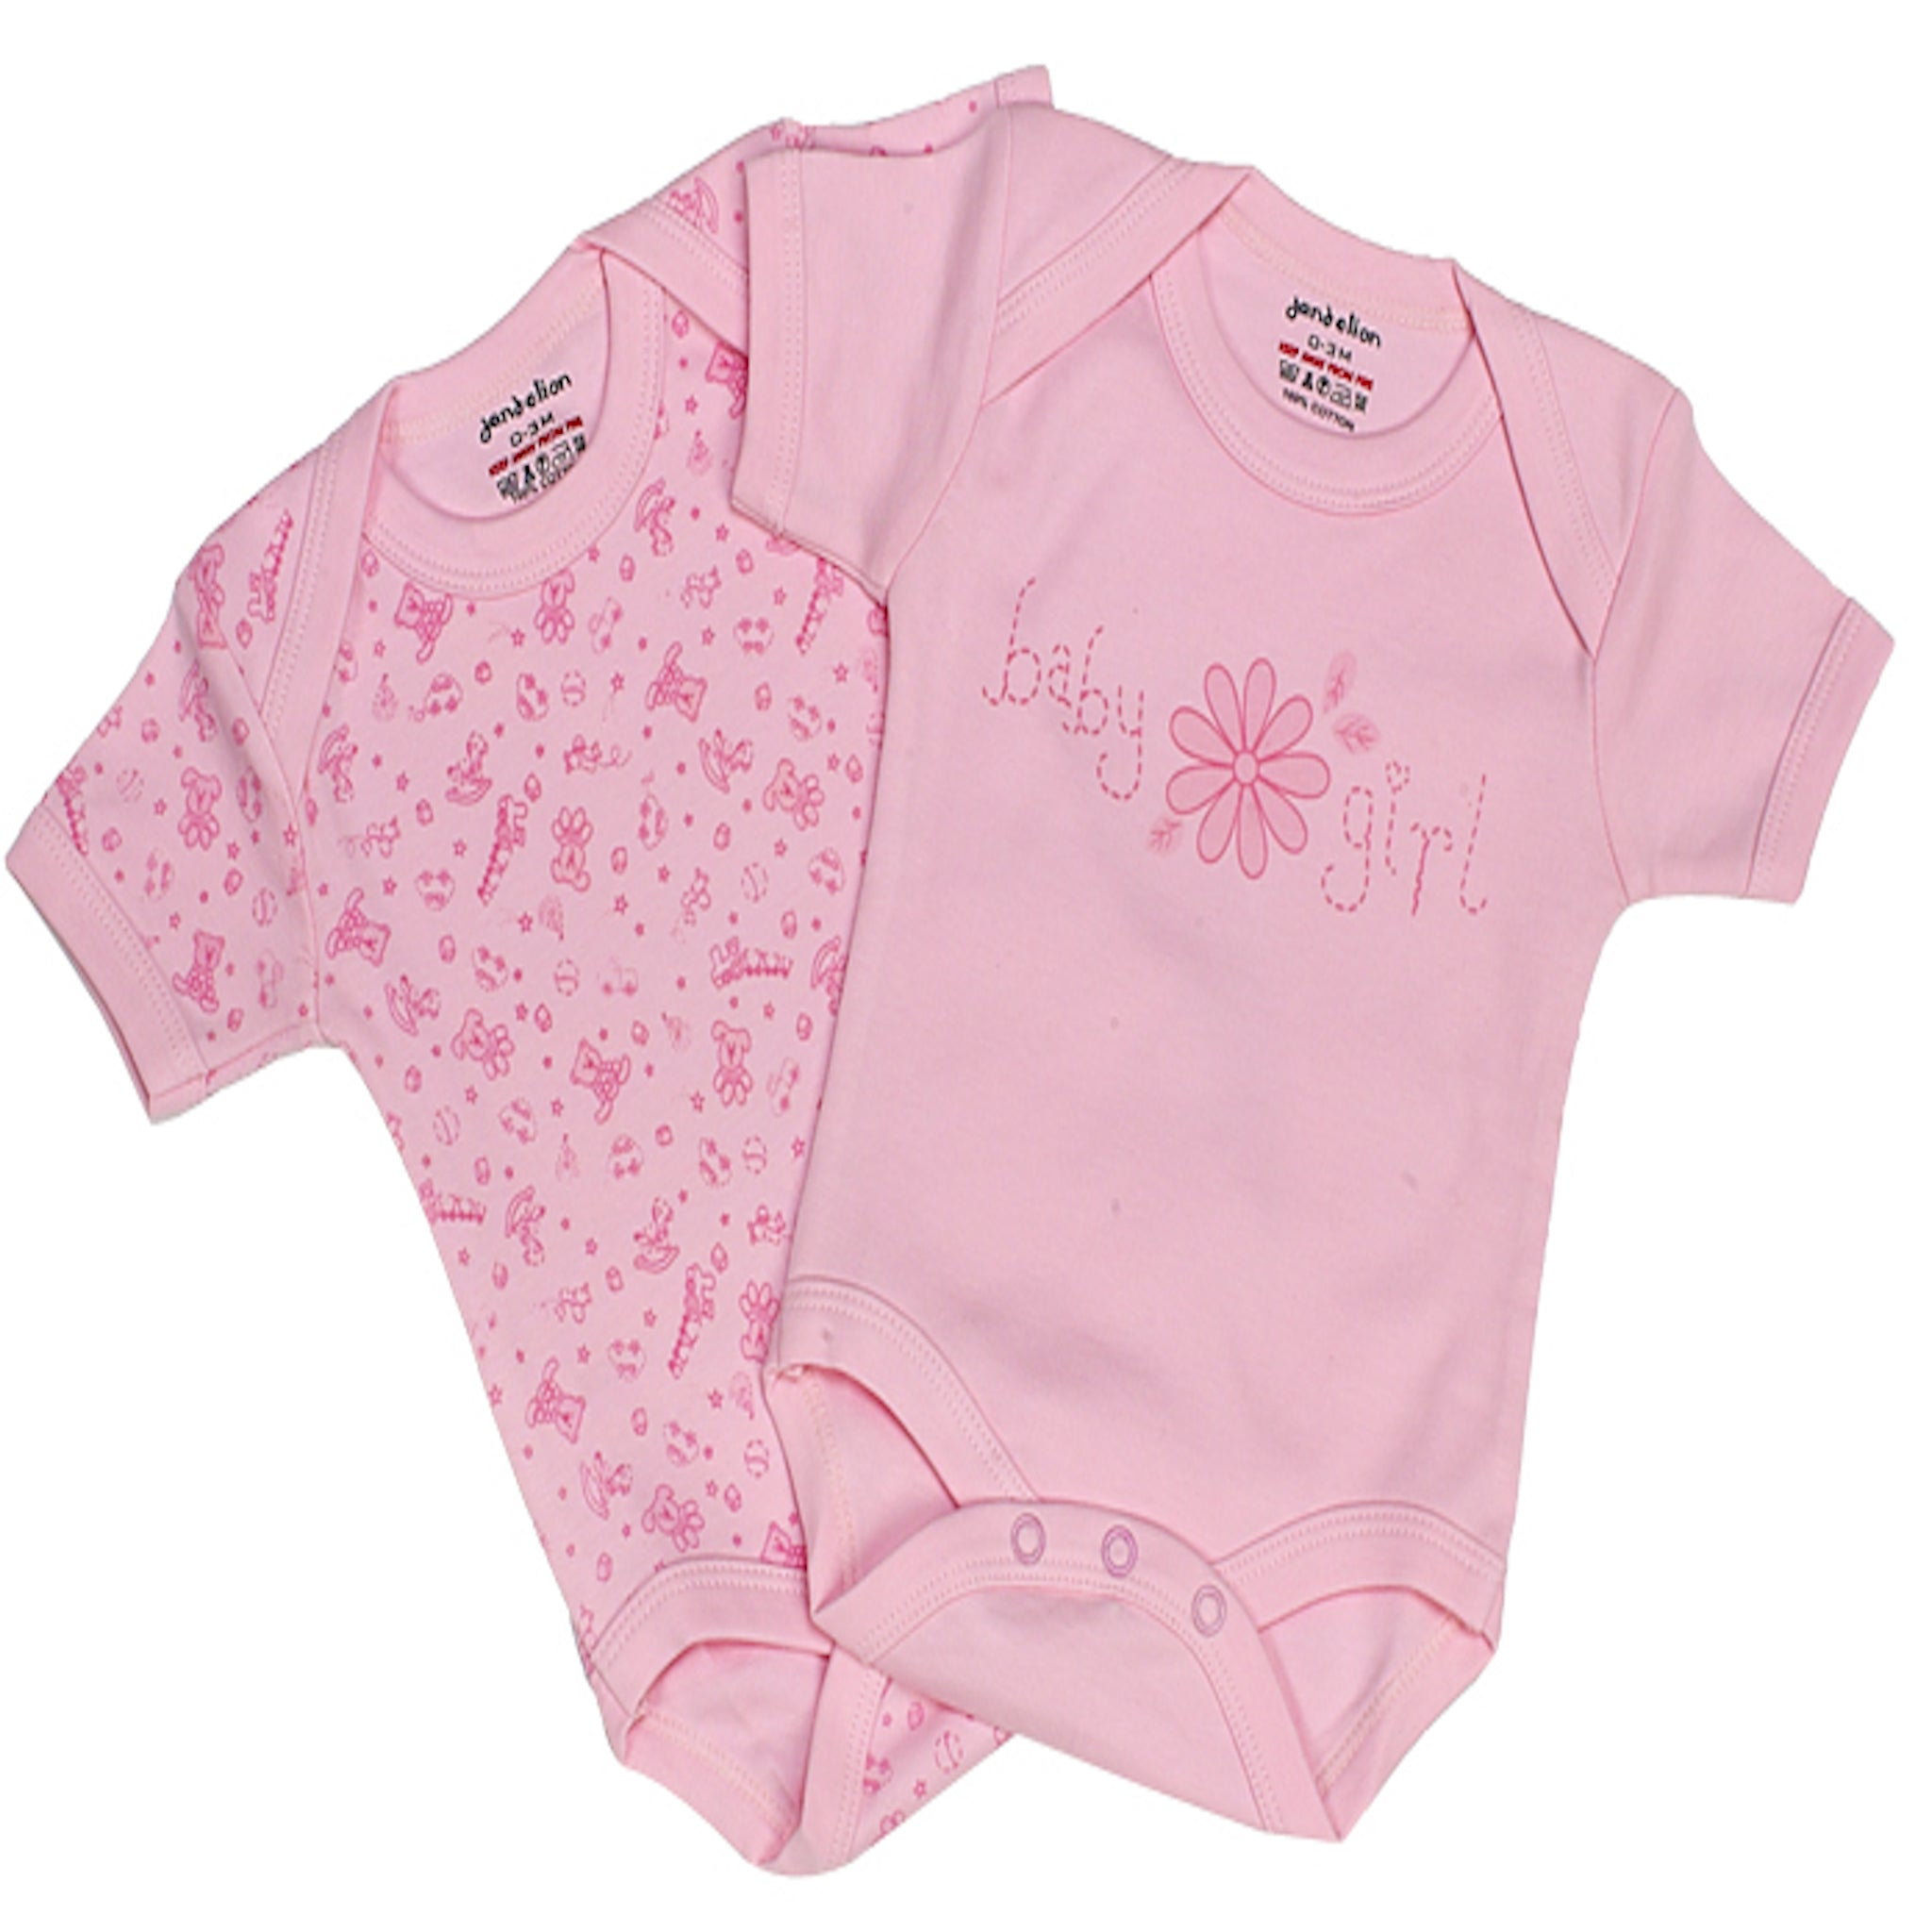 baby girl bodysuits. With new long-sleeve and short-sleeve styles, our soft cotton baby girl bodysuits keep her cute and comfy all season. Plus, with baby girl bodysuit packs, there's always an extra!